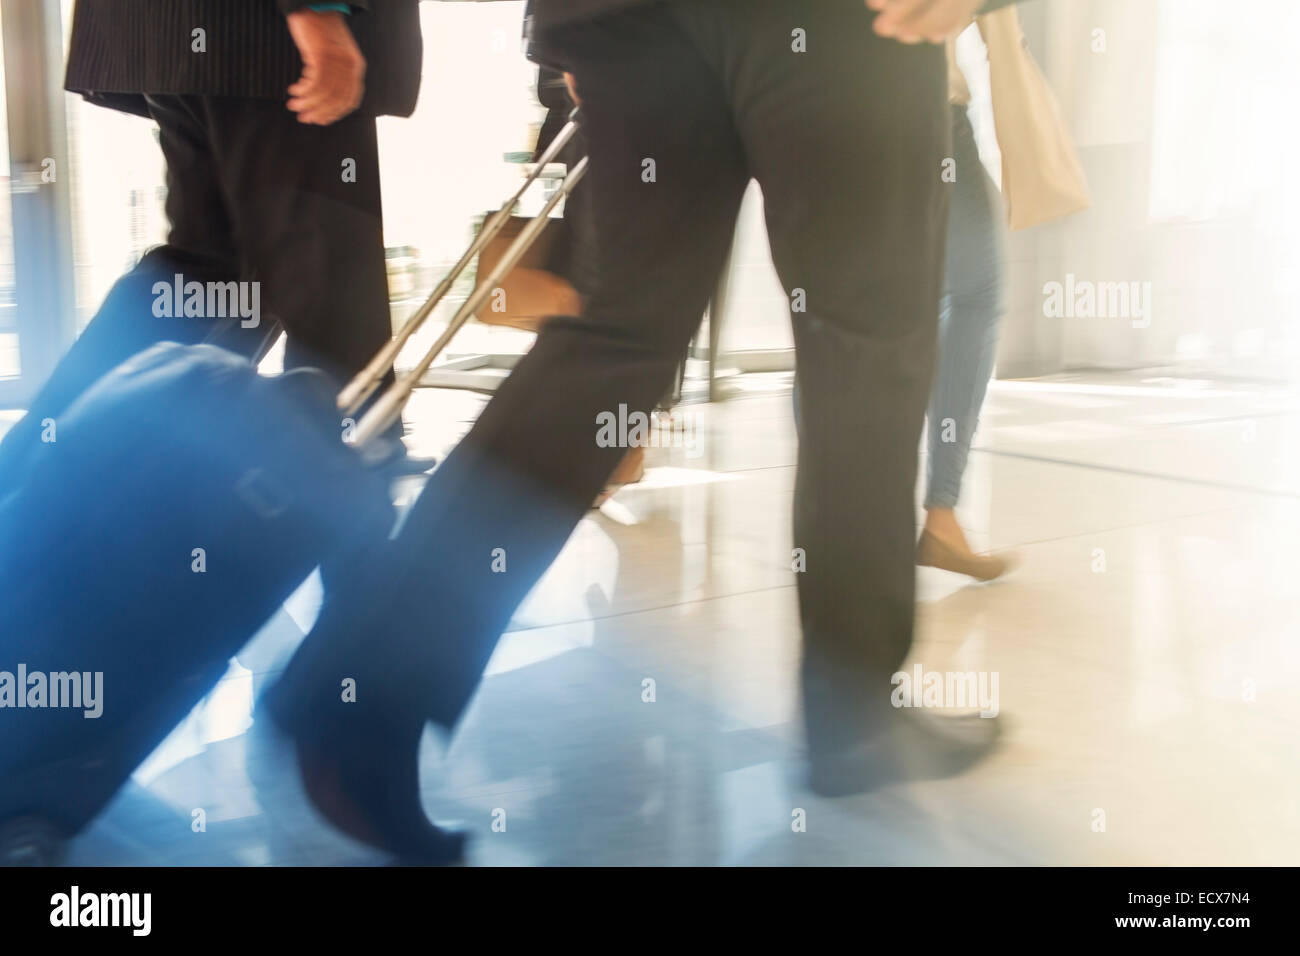 Cropped shot of two men walking side by side with trolley case - Stock Image